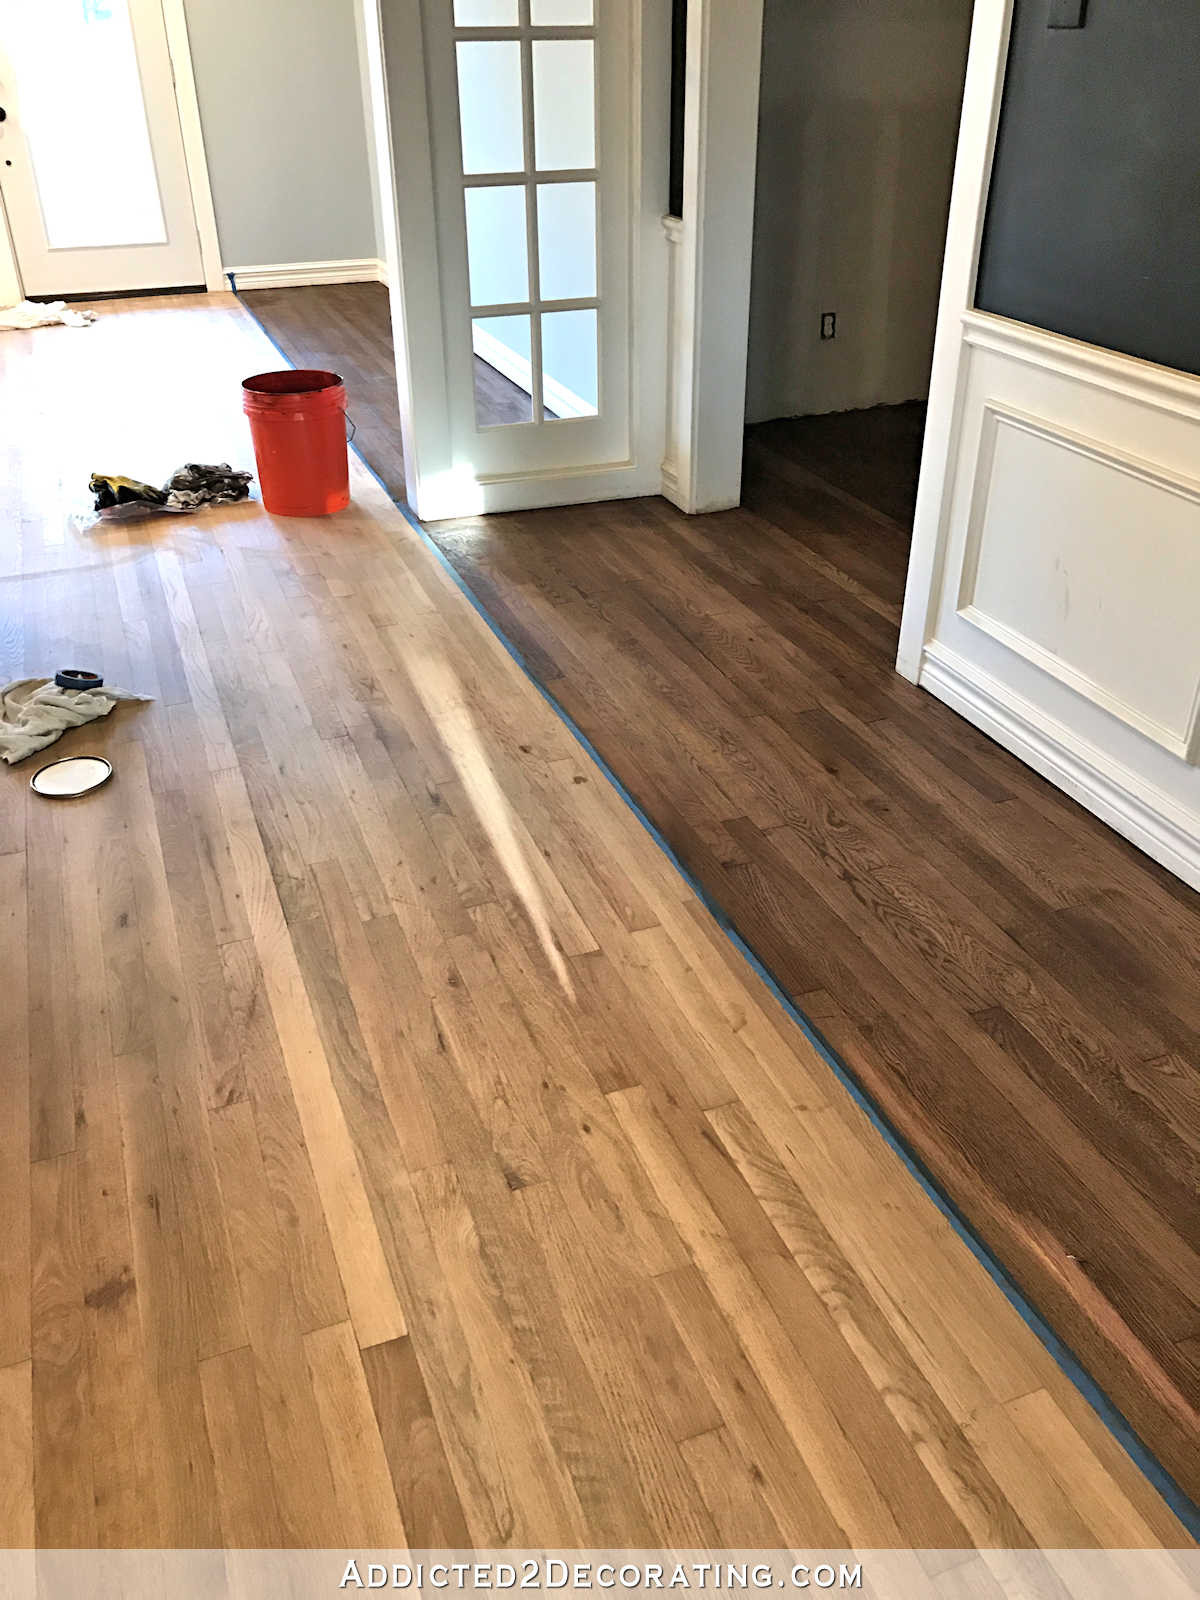 installing unfinished hardwood floors yourself of adventures in staining my red oak hardwood floors products process for staining red oak hardwood floors 6 stain on partial floor in entryway and music